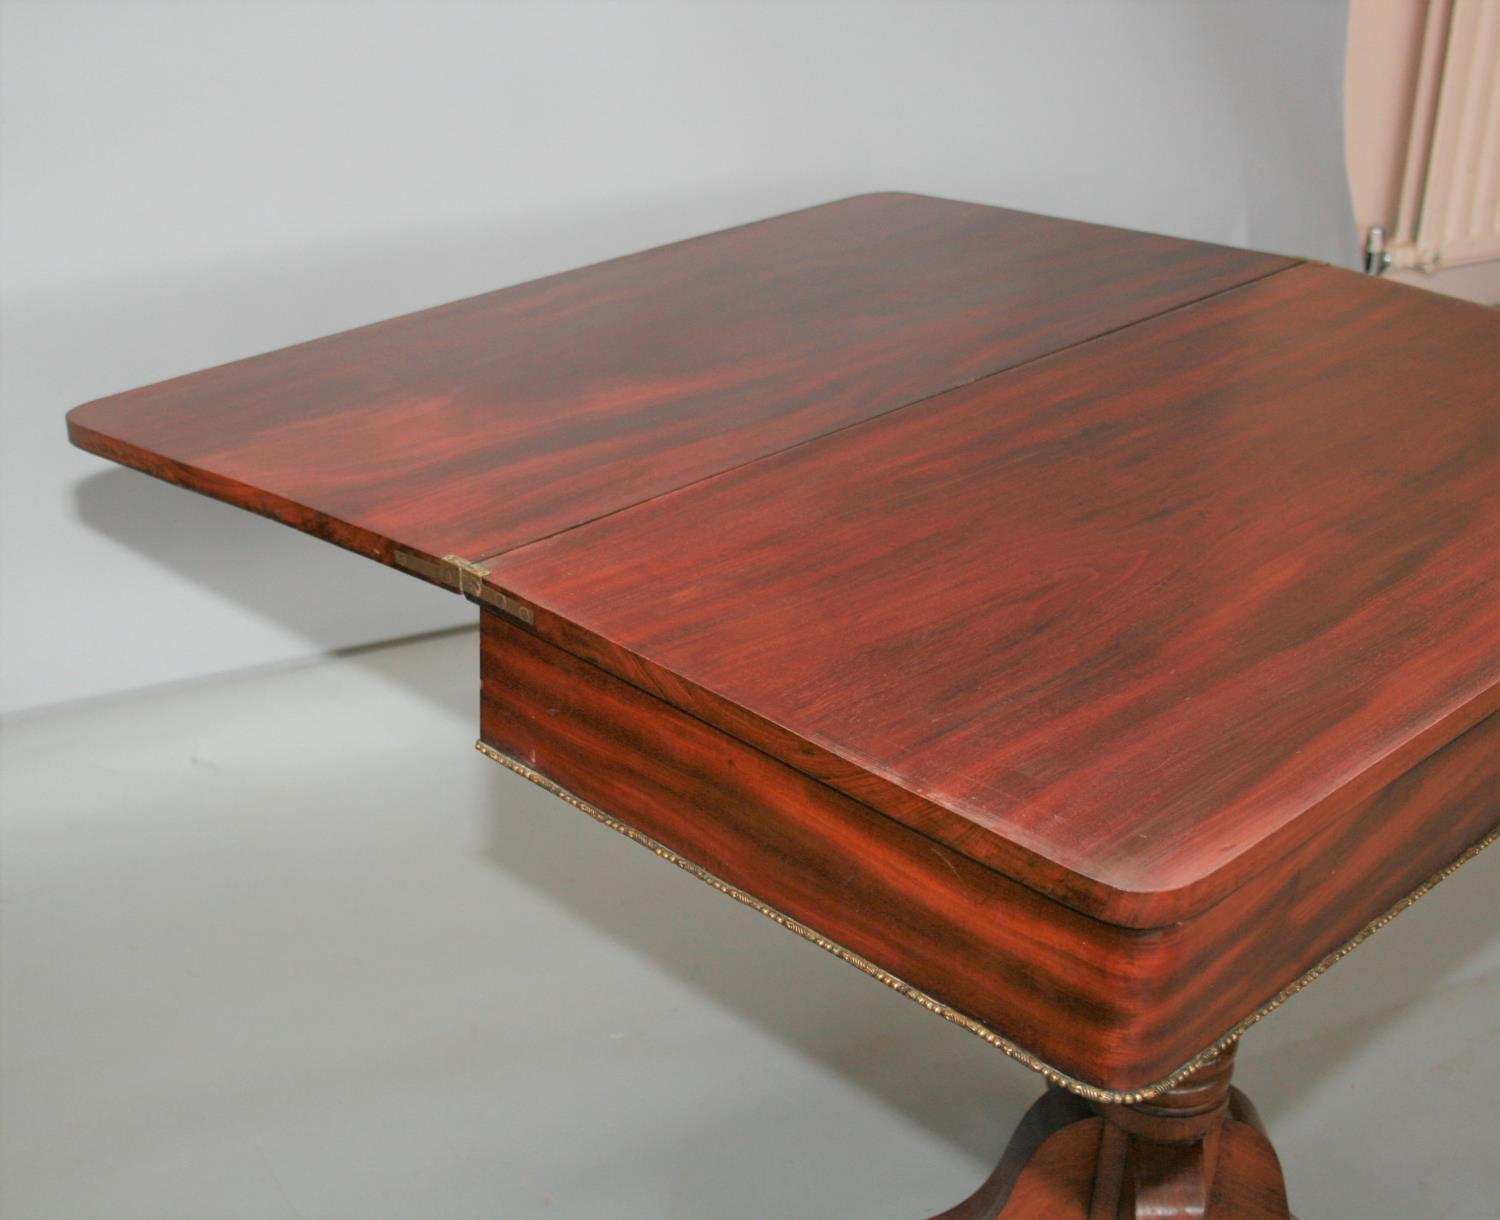 Fine Regency mahogany fold over tea table, the top with Rosewood cross banding and frieze with ebony - Image 3 of 4